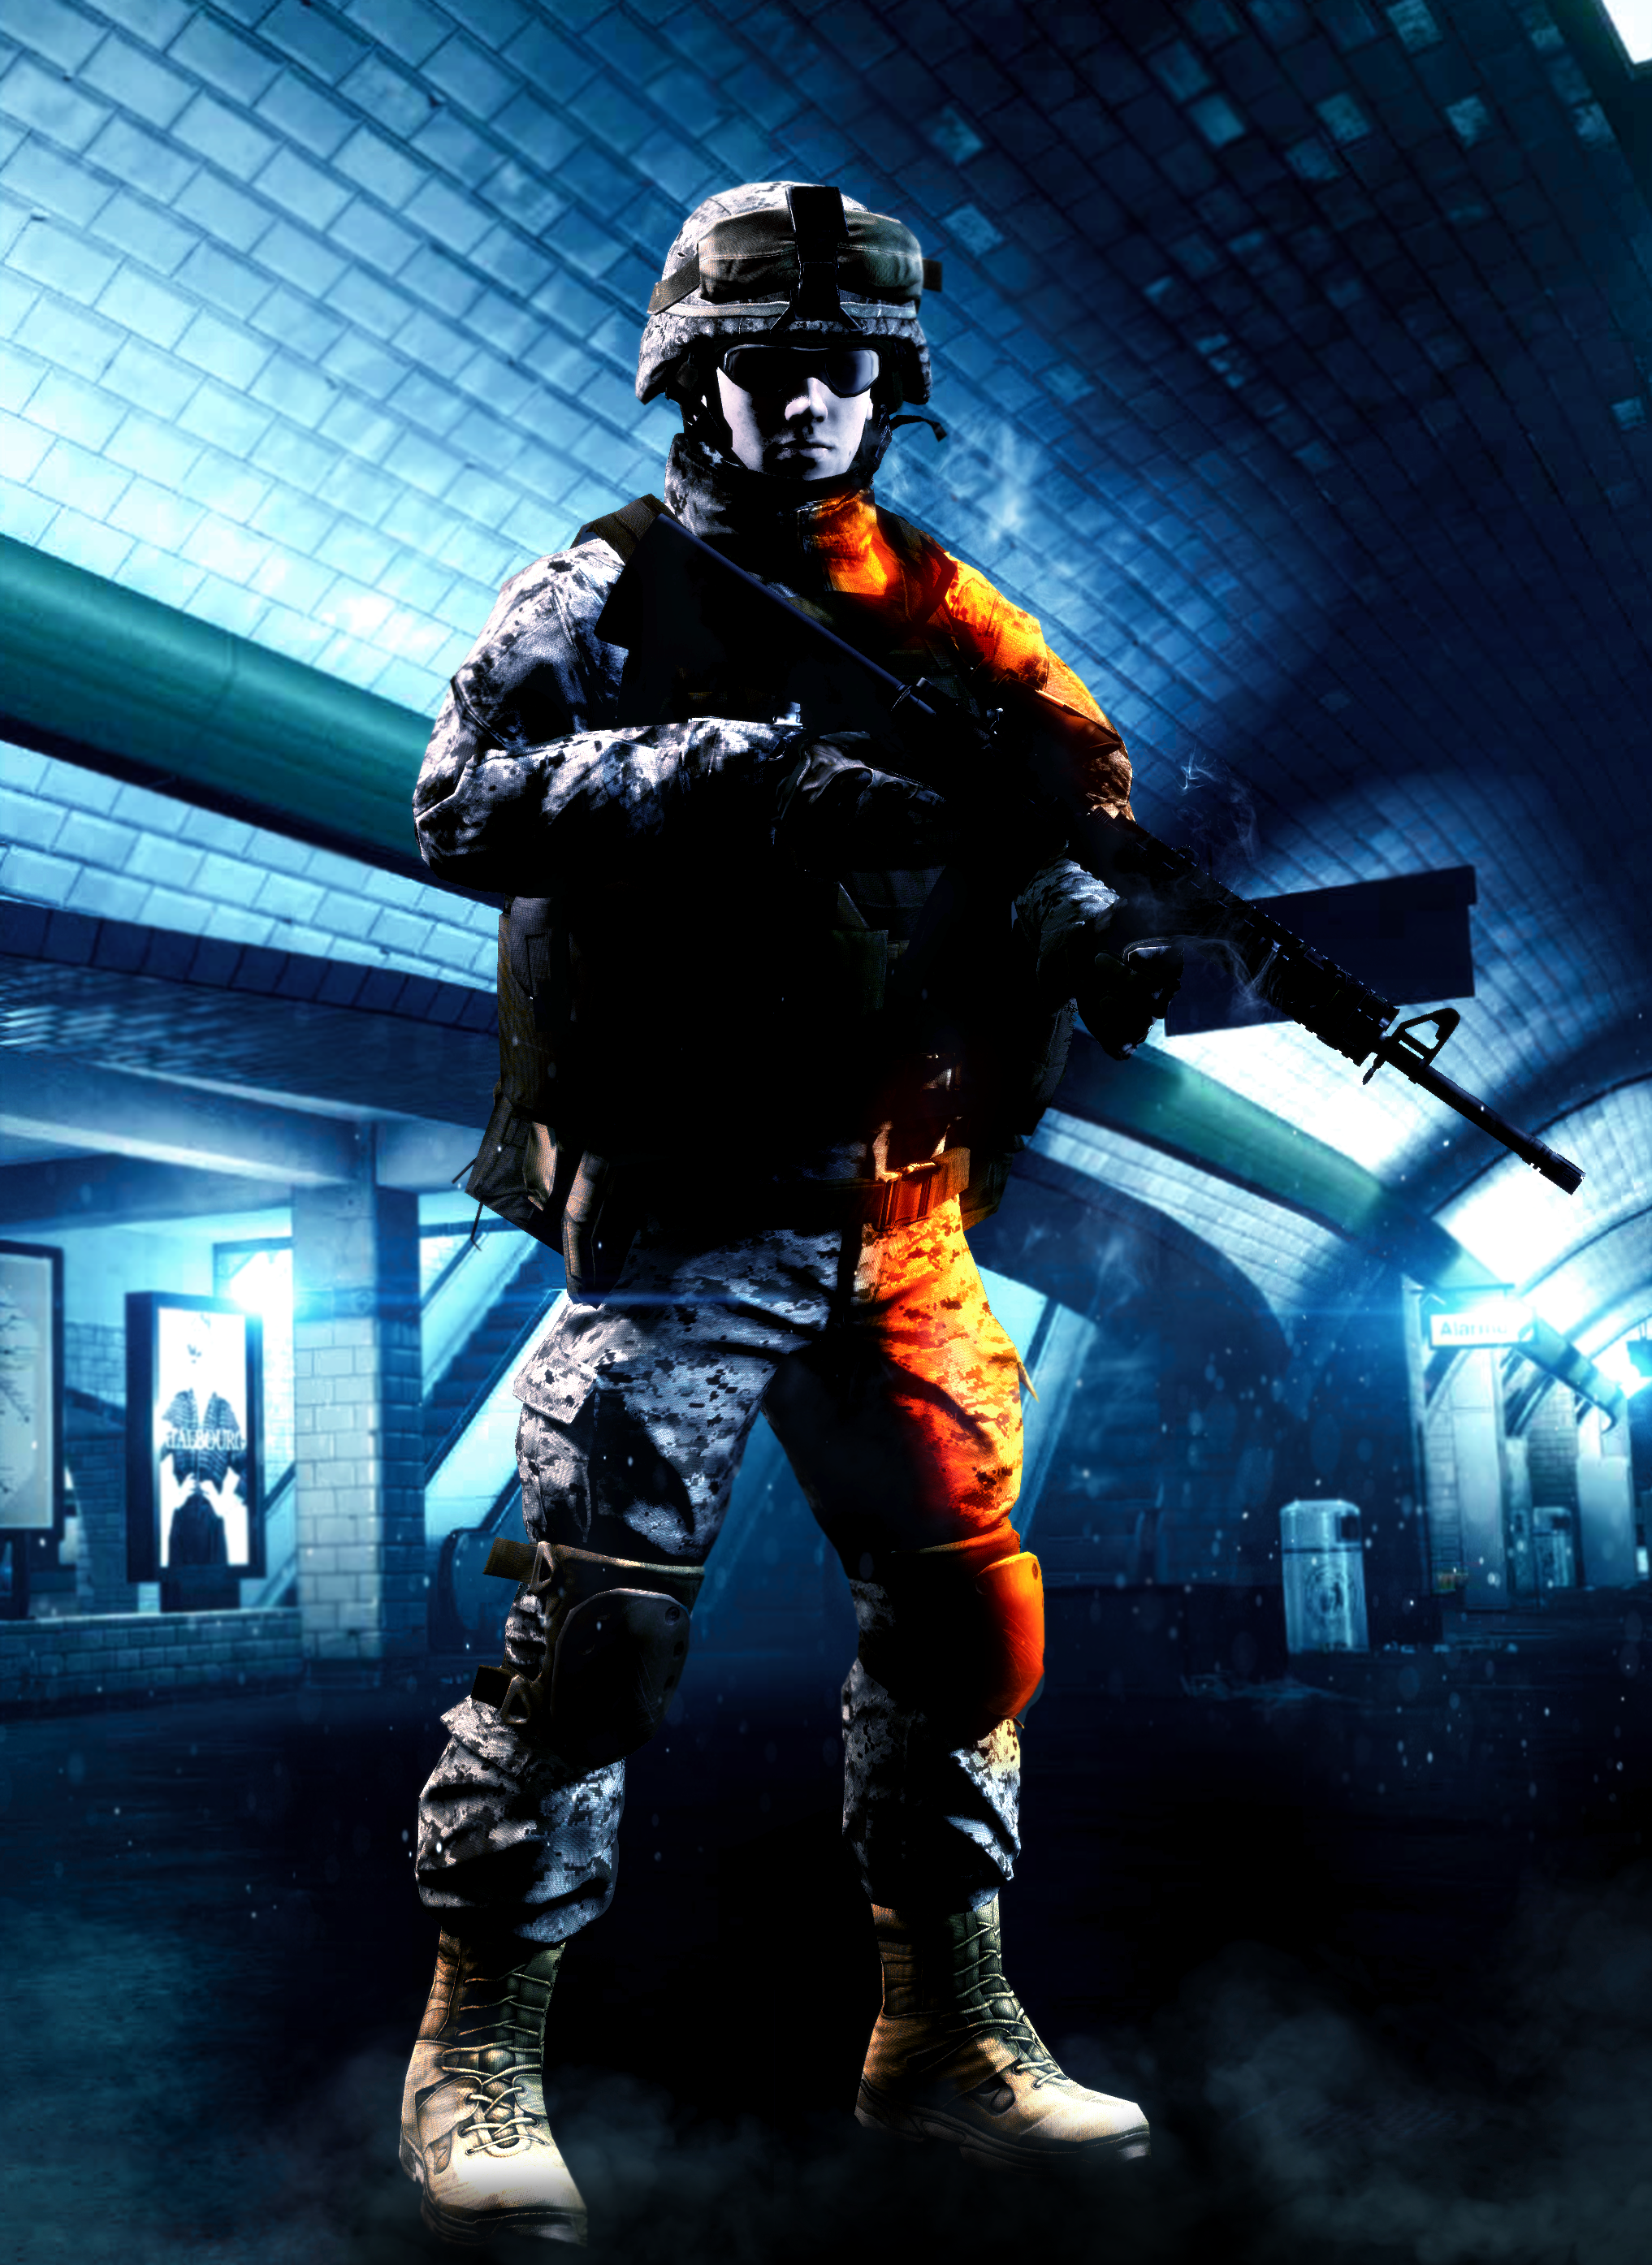 Battlefield 4: Metro by LordHayabusa357